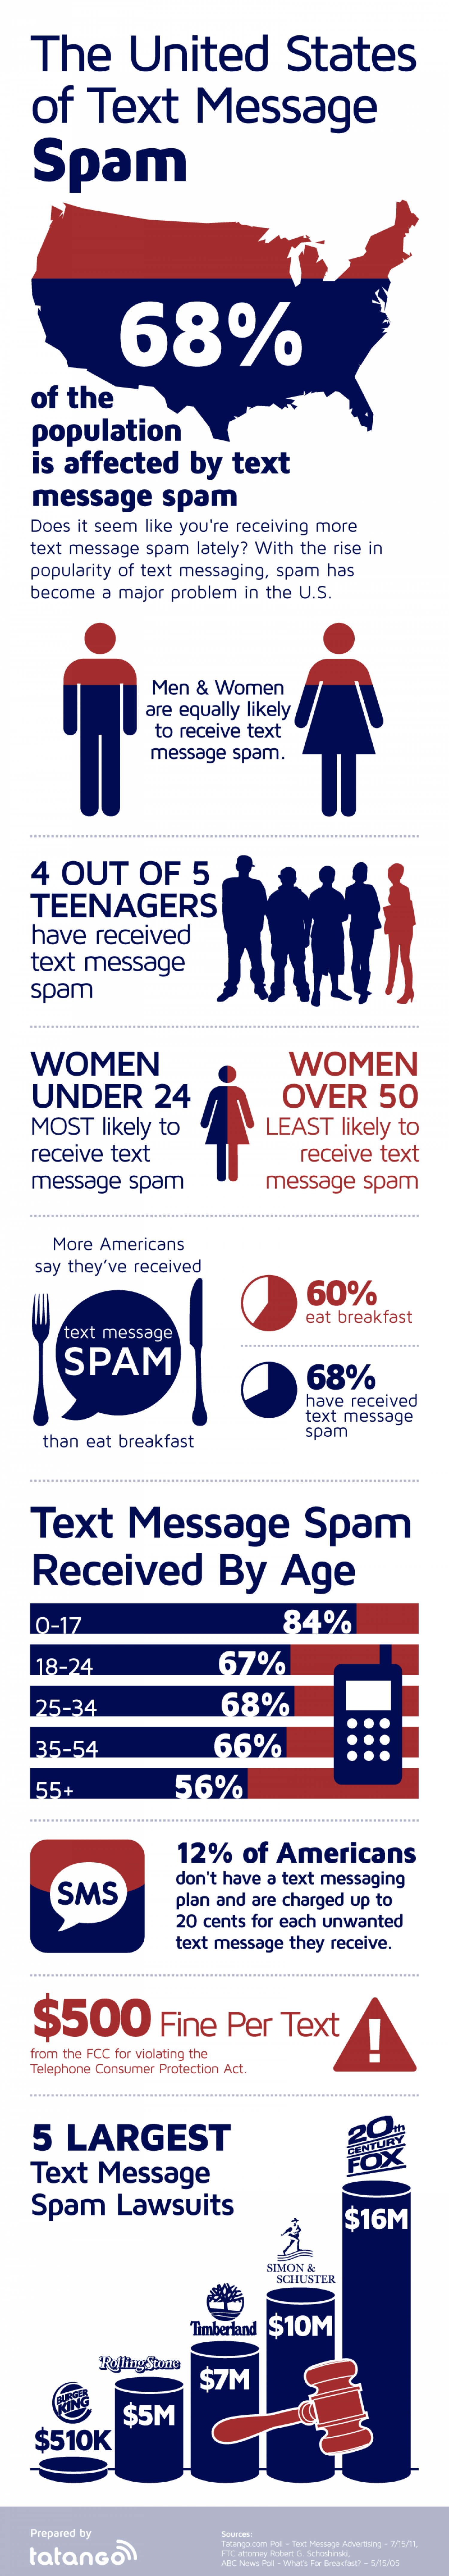 The United States of Text Message Spam Infographic